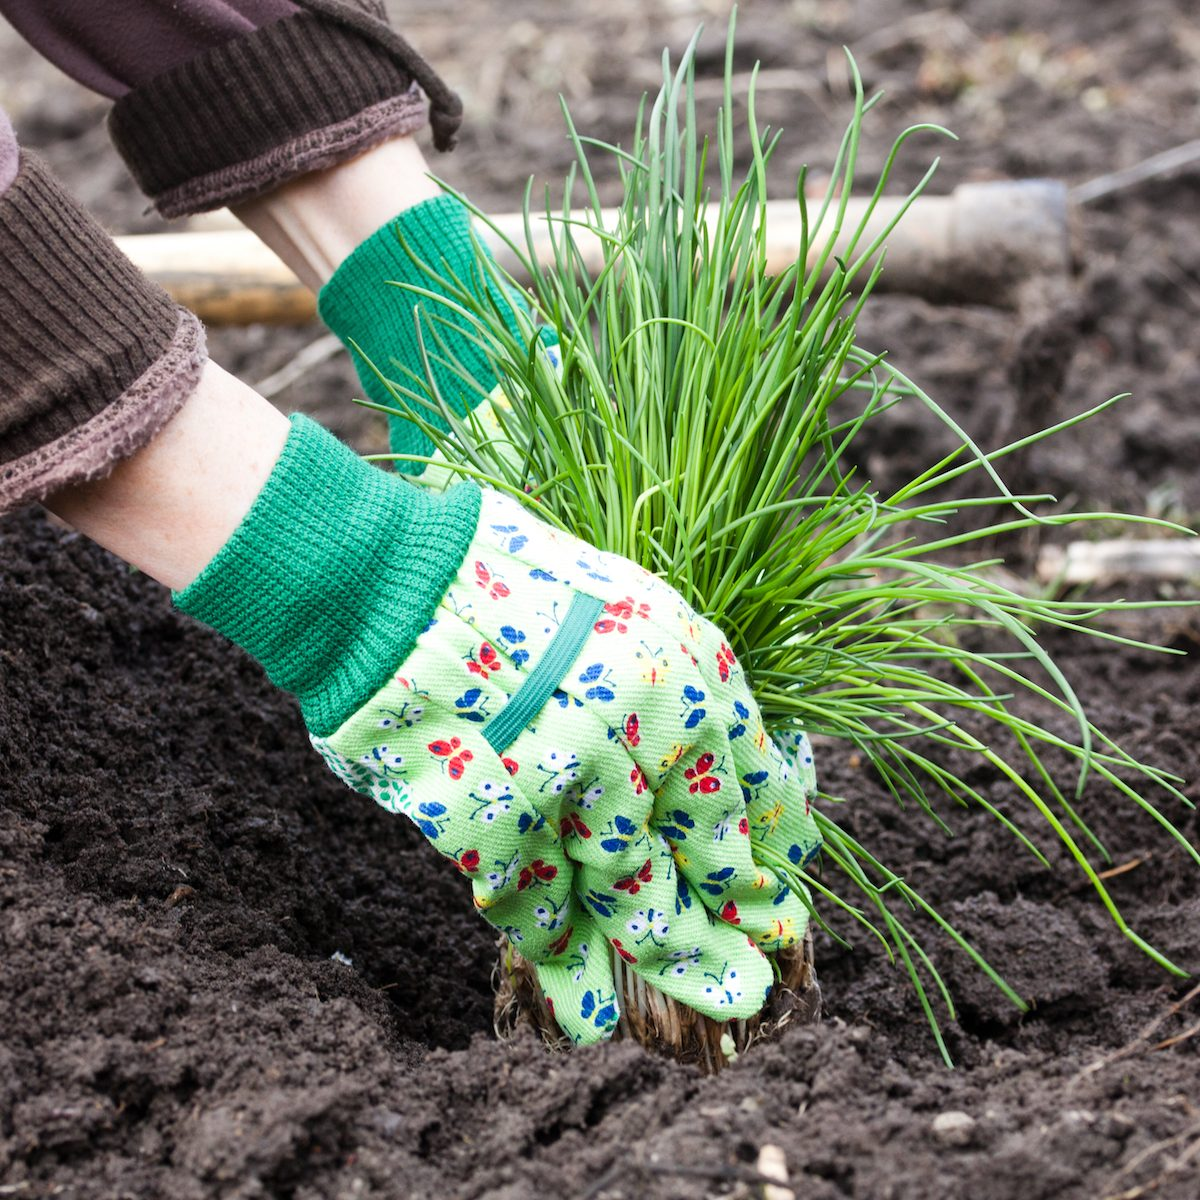 woman's hands planting chives in garden in early spring